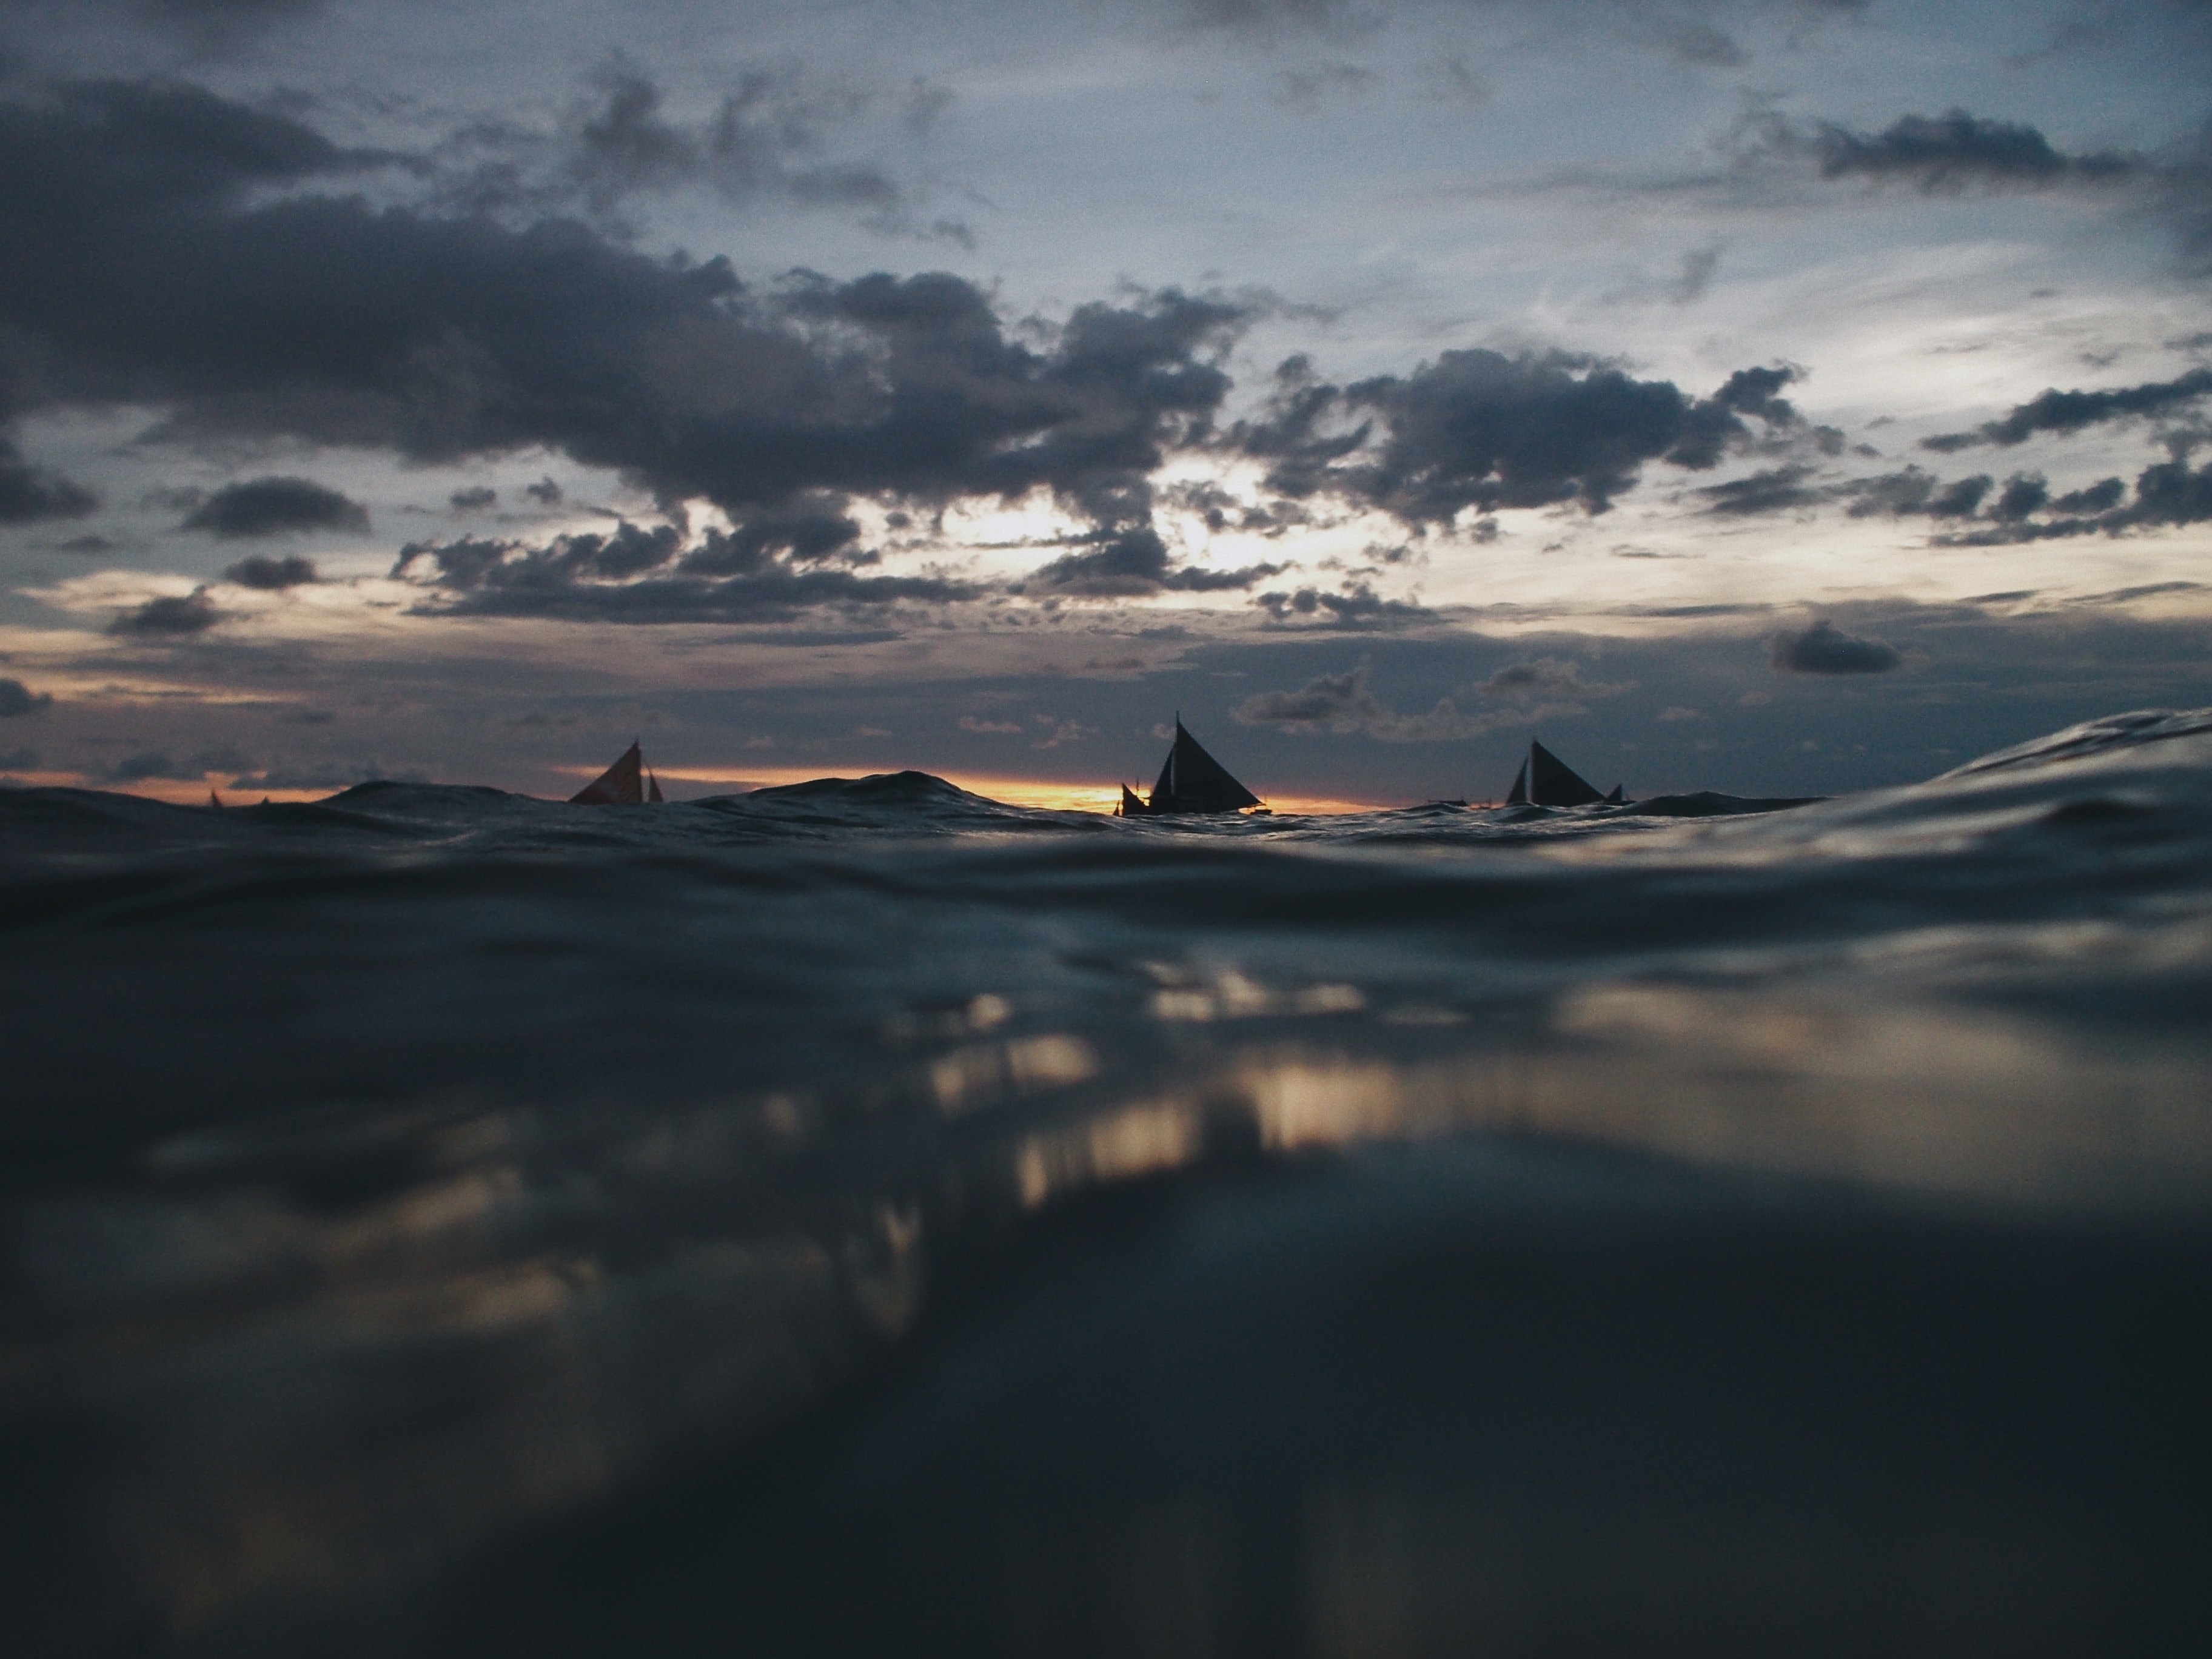 sailboats on body of water under gray clouds